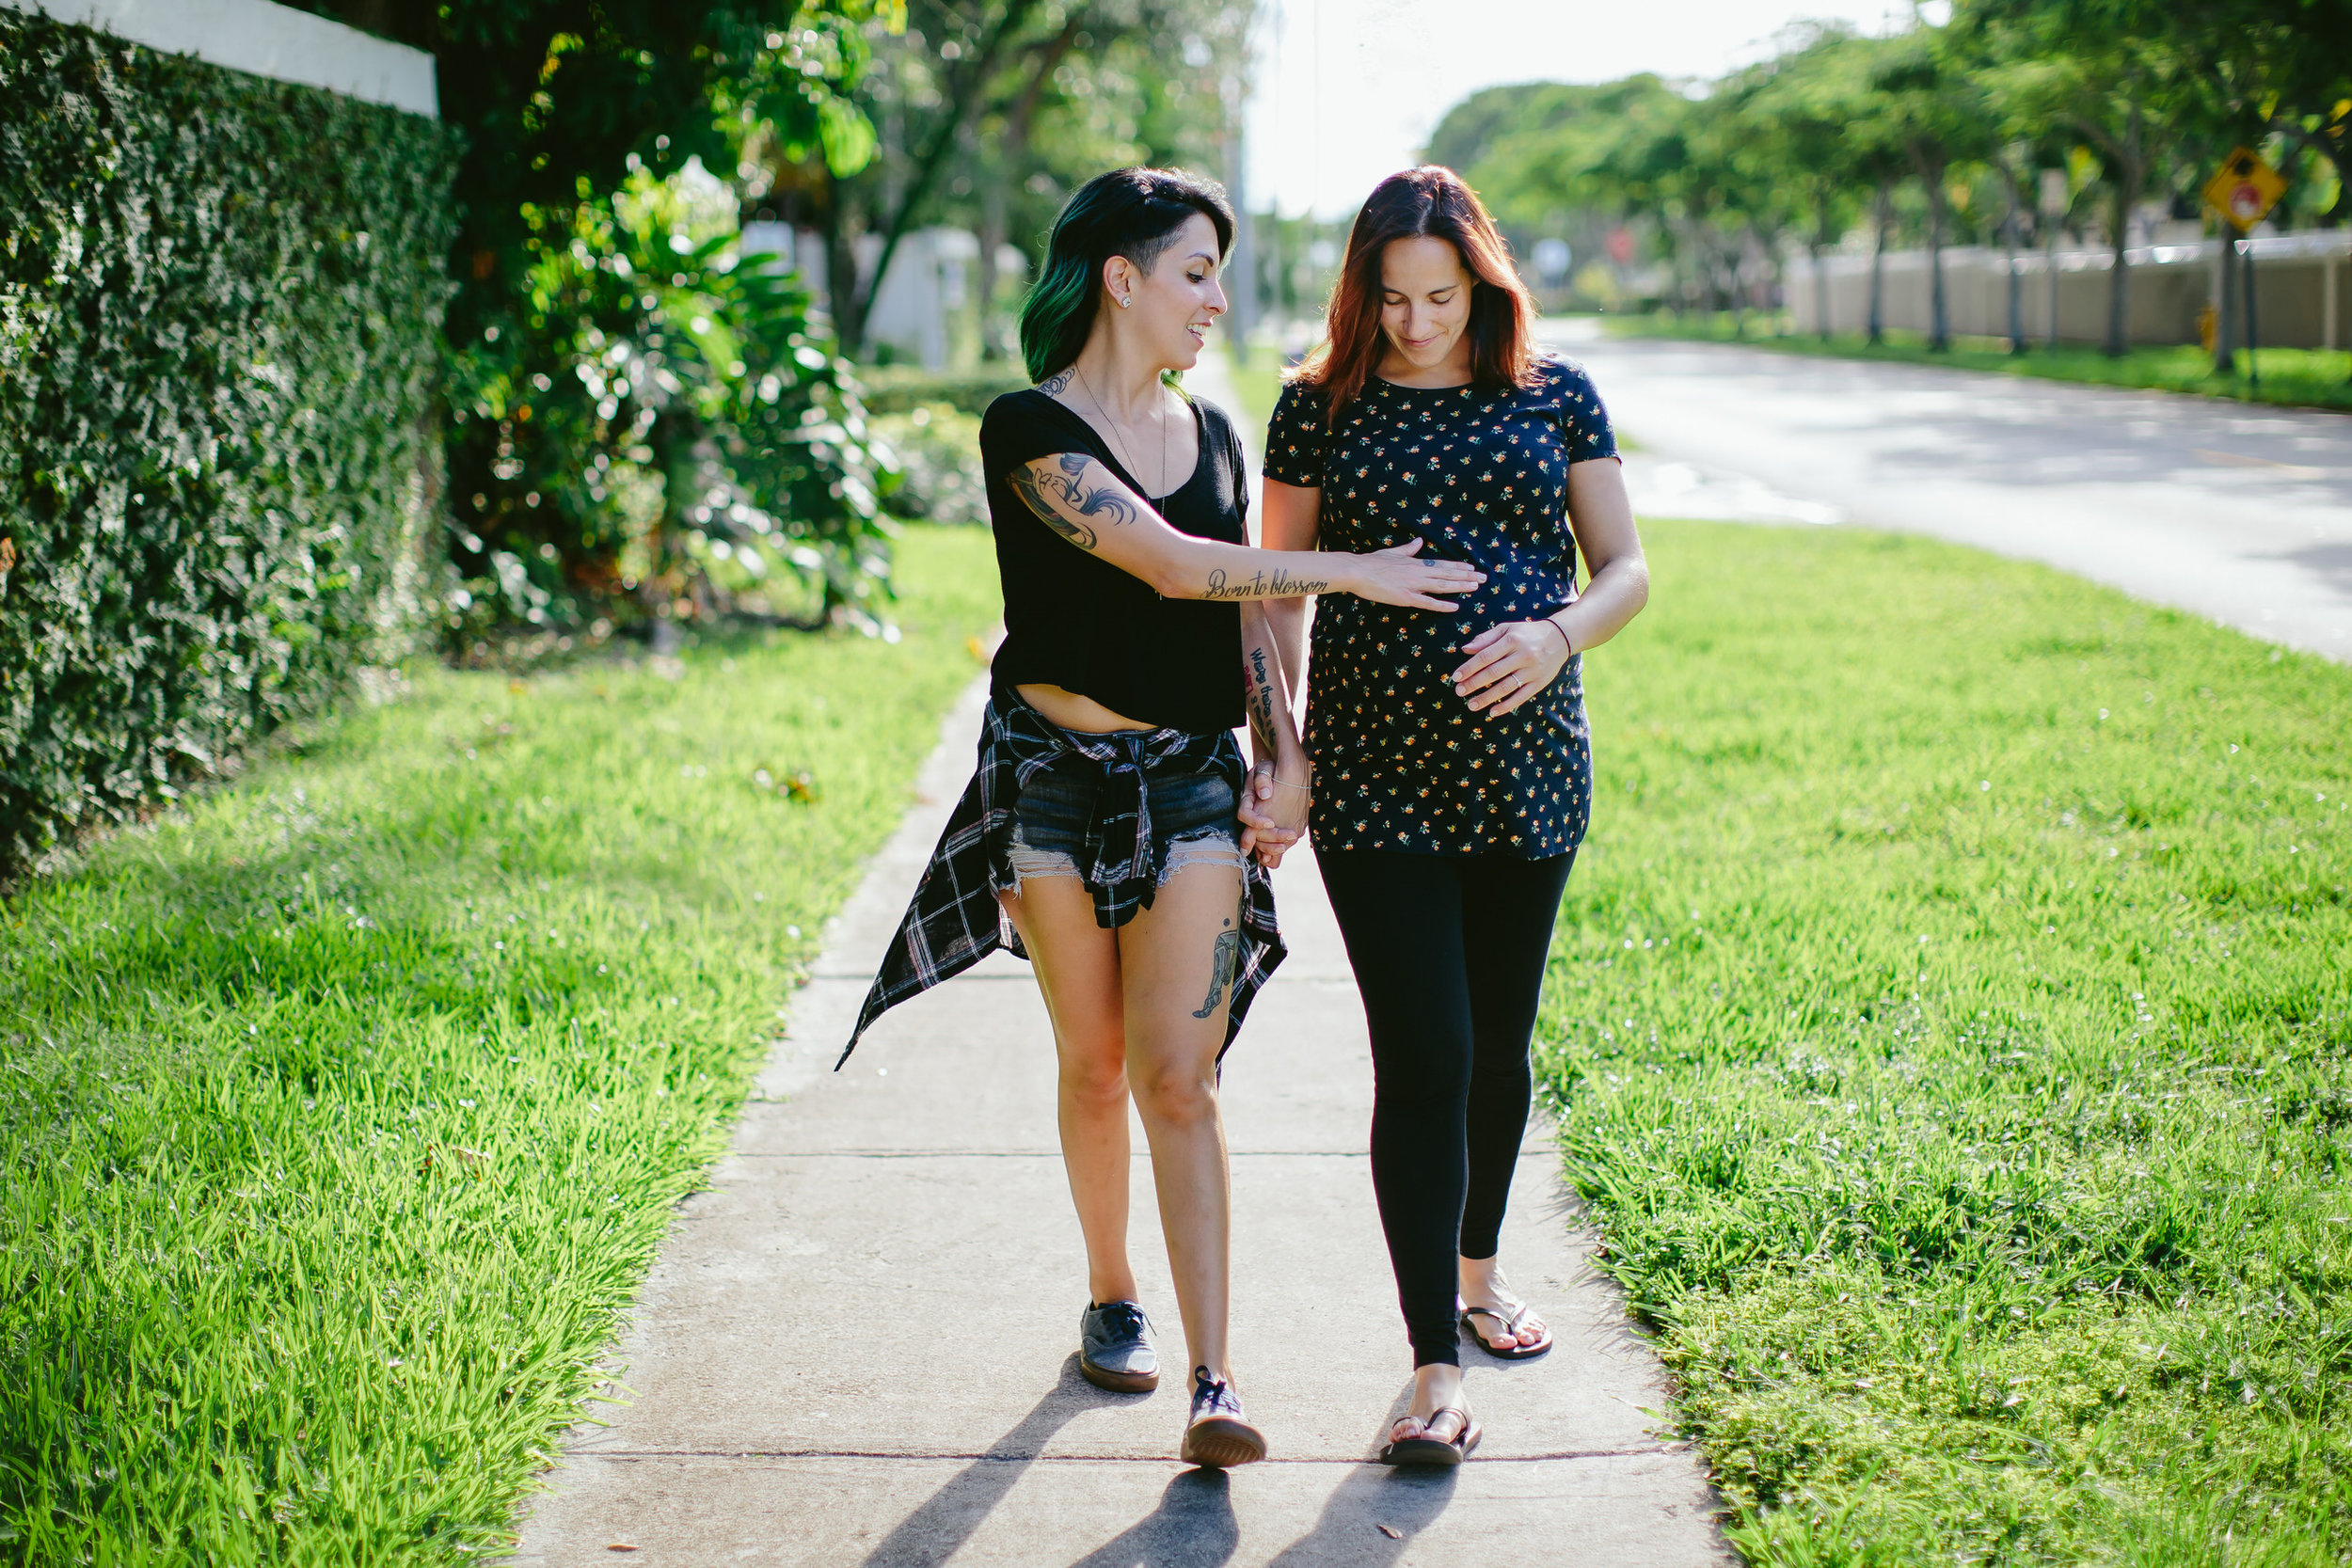 documentary_pregnancy_session_miami_florida_steph_lynn_photo-94.jpg